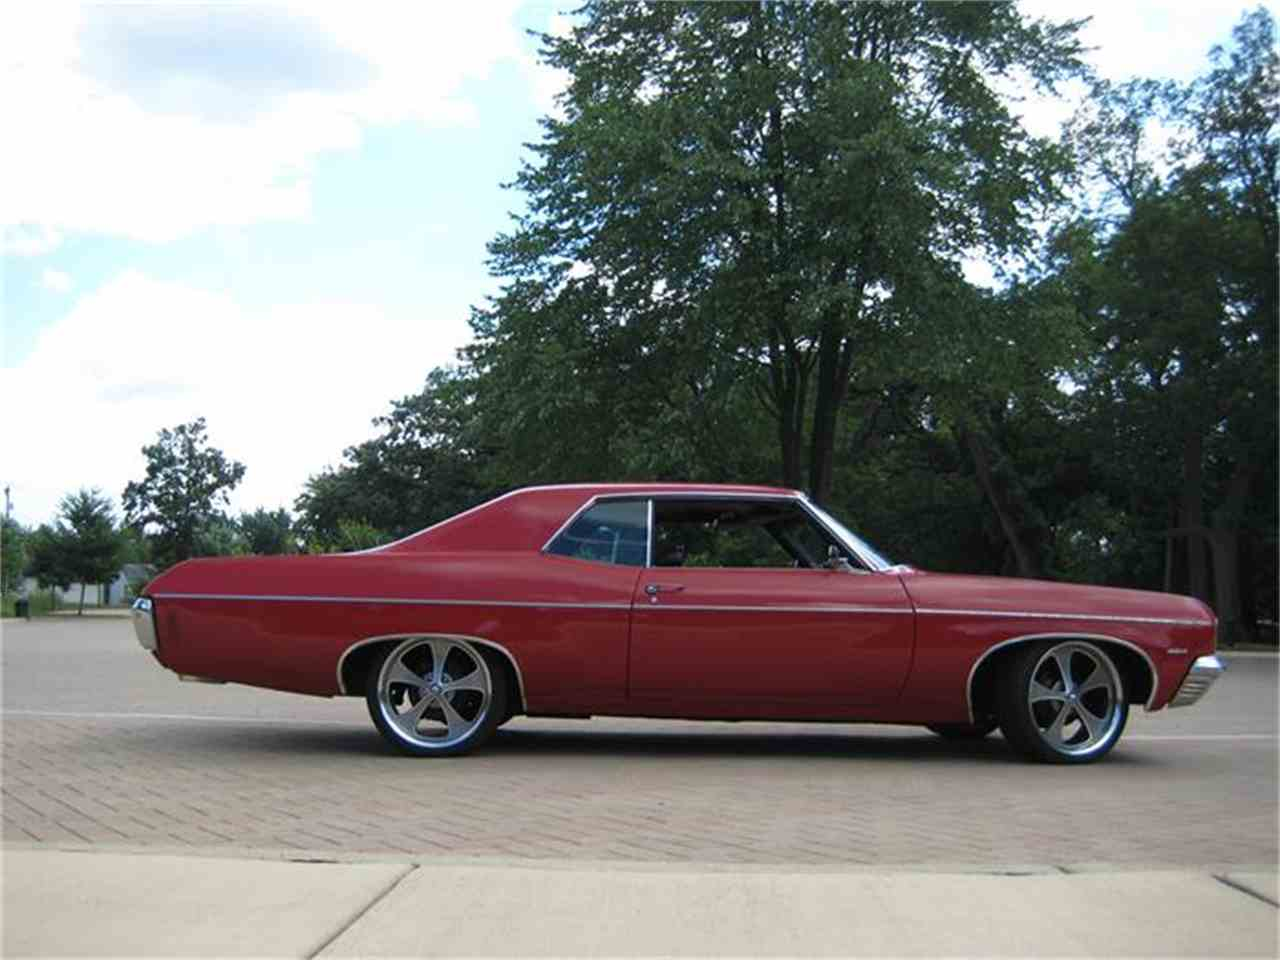 Chevy Dealers Tampa >> 1970 Chevrolet Impala for Sale | ClassicCars.com | CC-705231